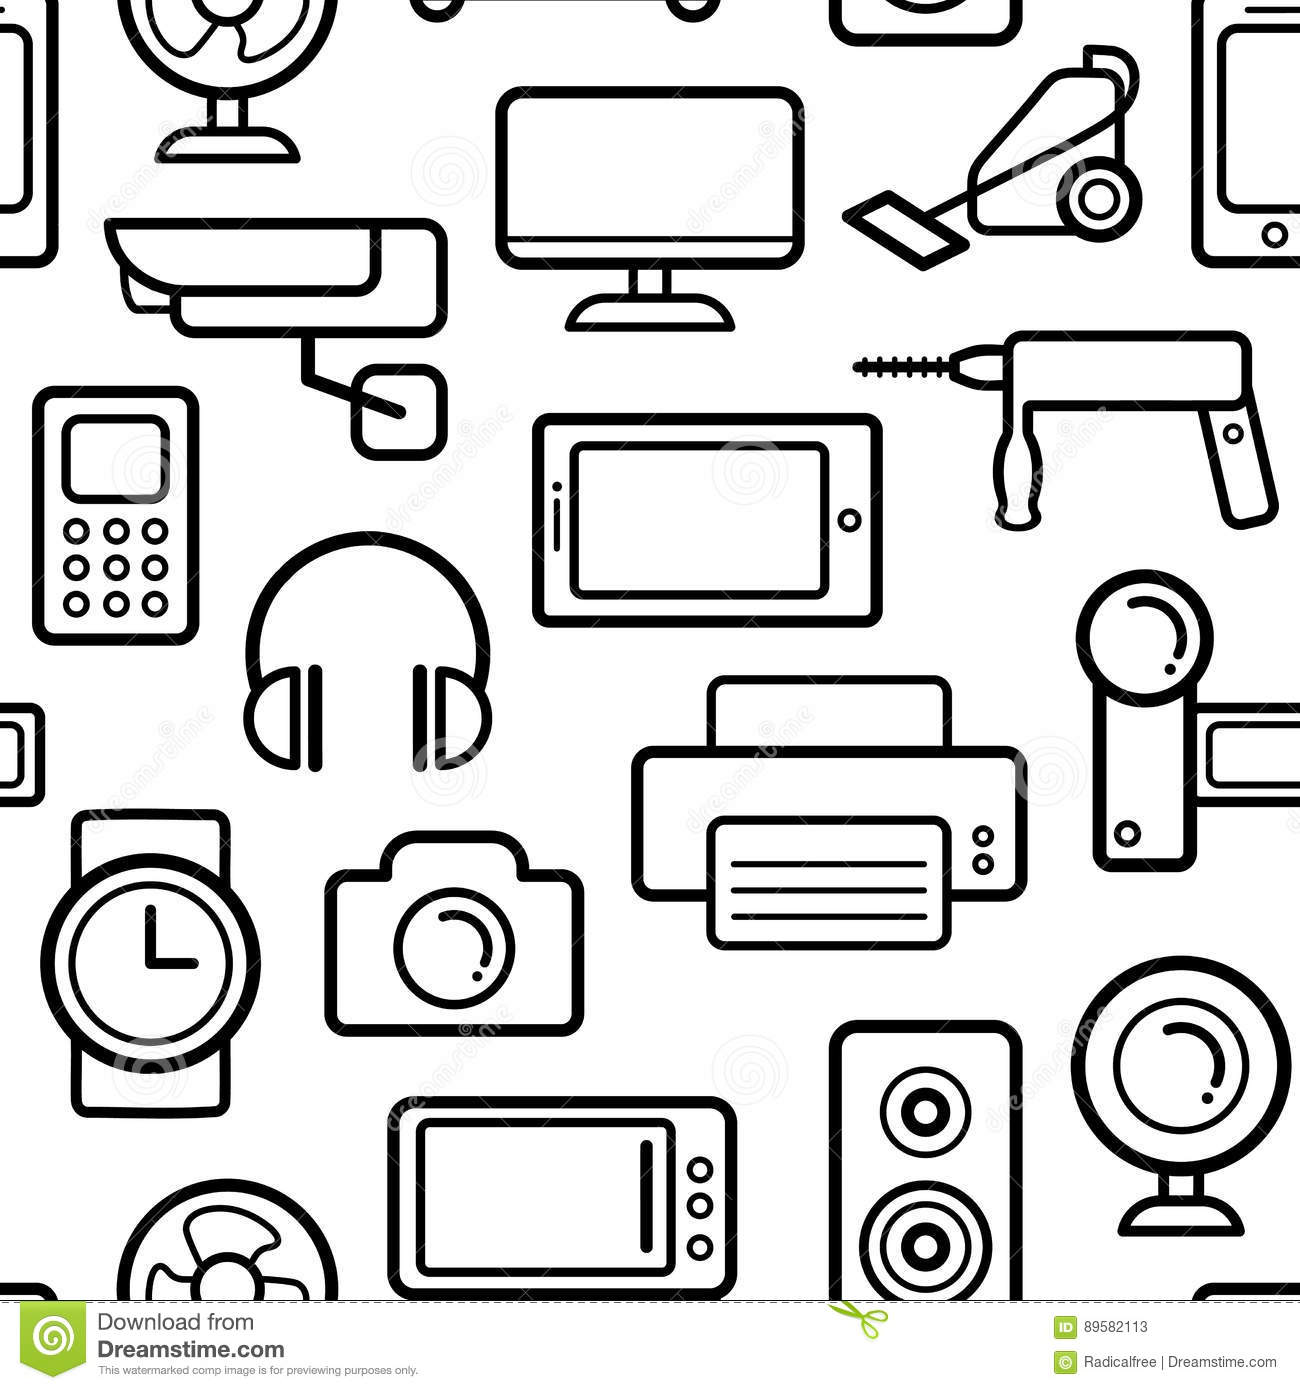 Line Art Household Cleaning Symbols Accessories Cartoon Vector